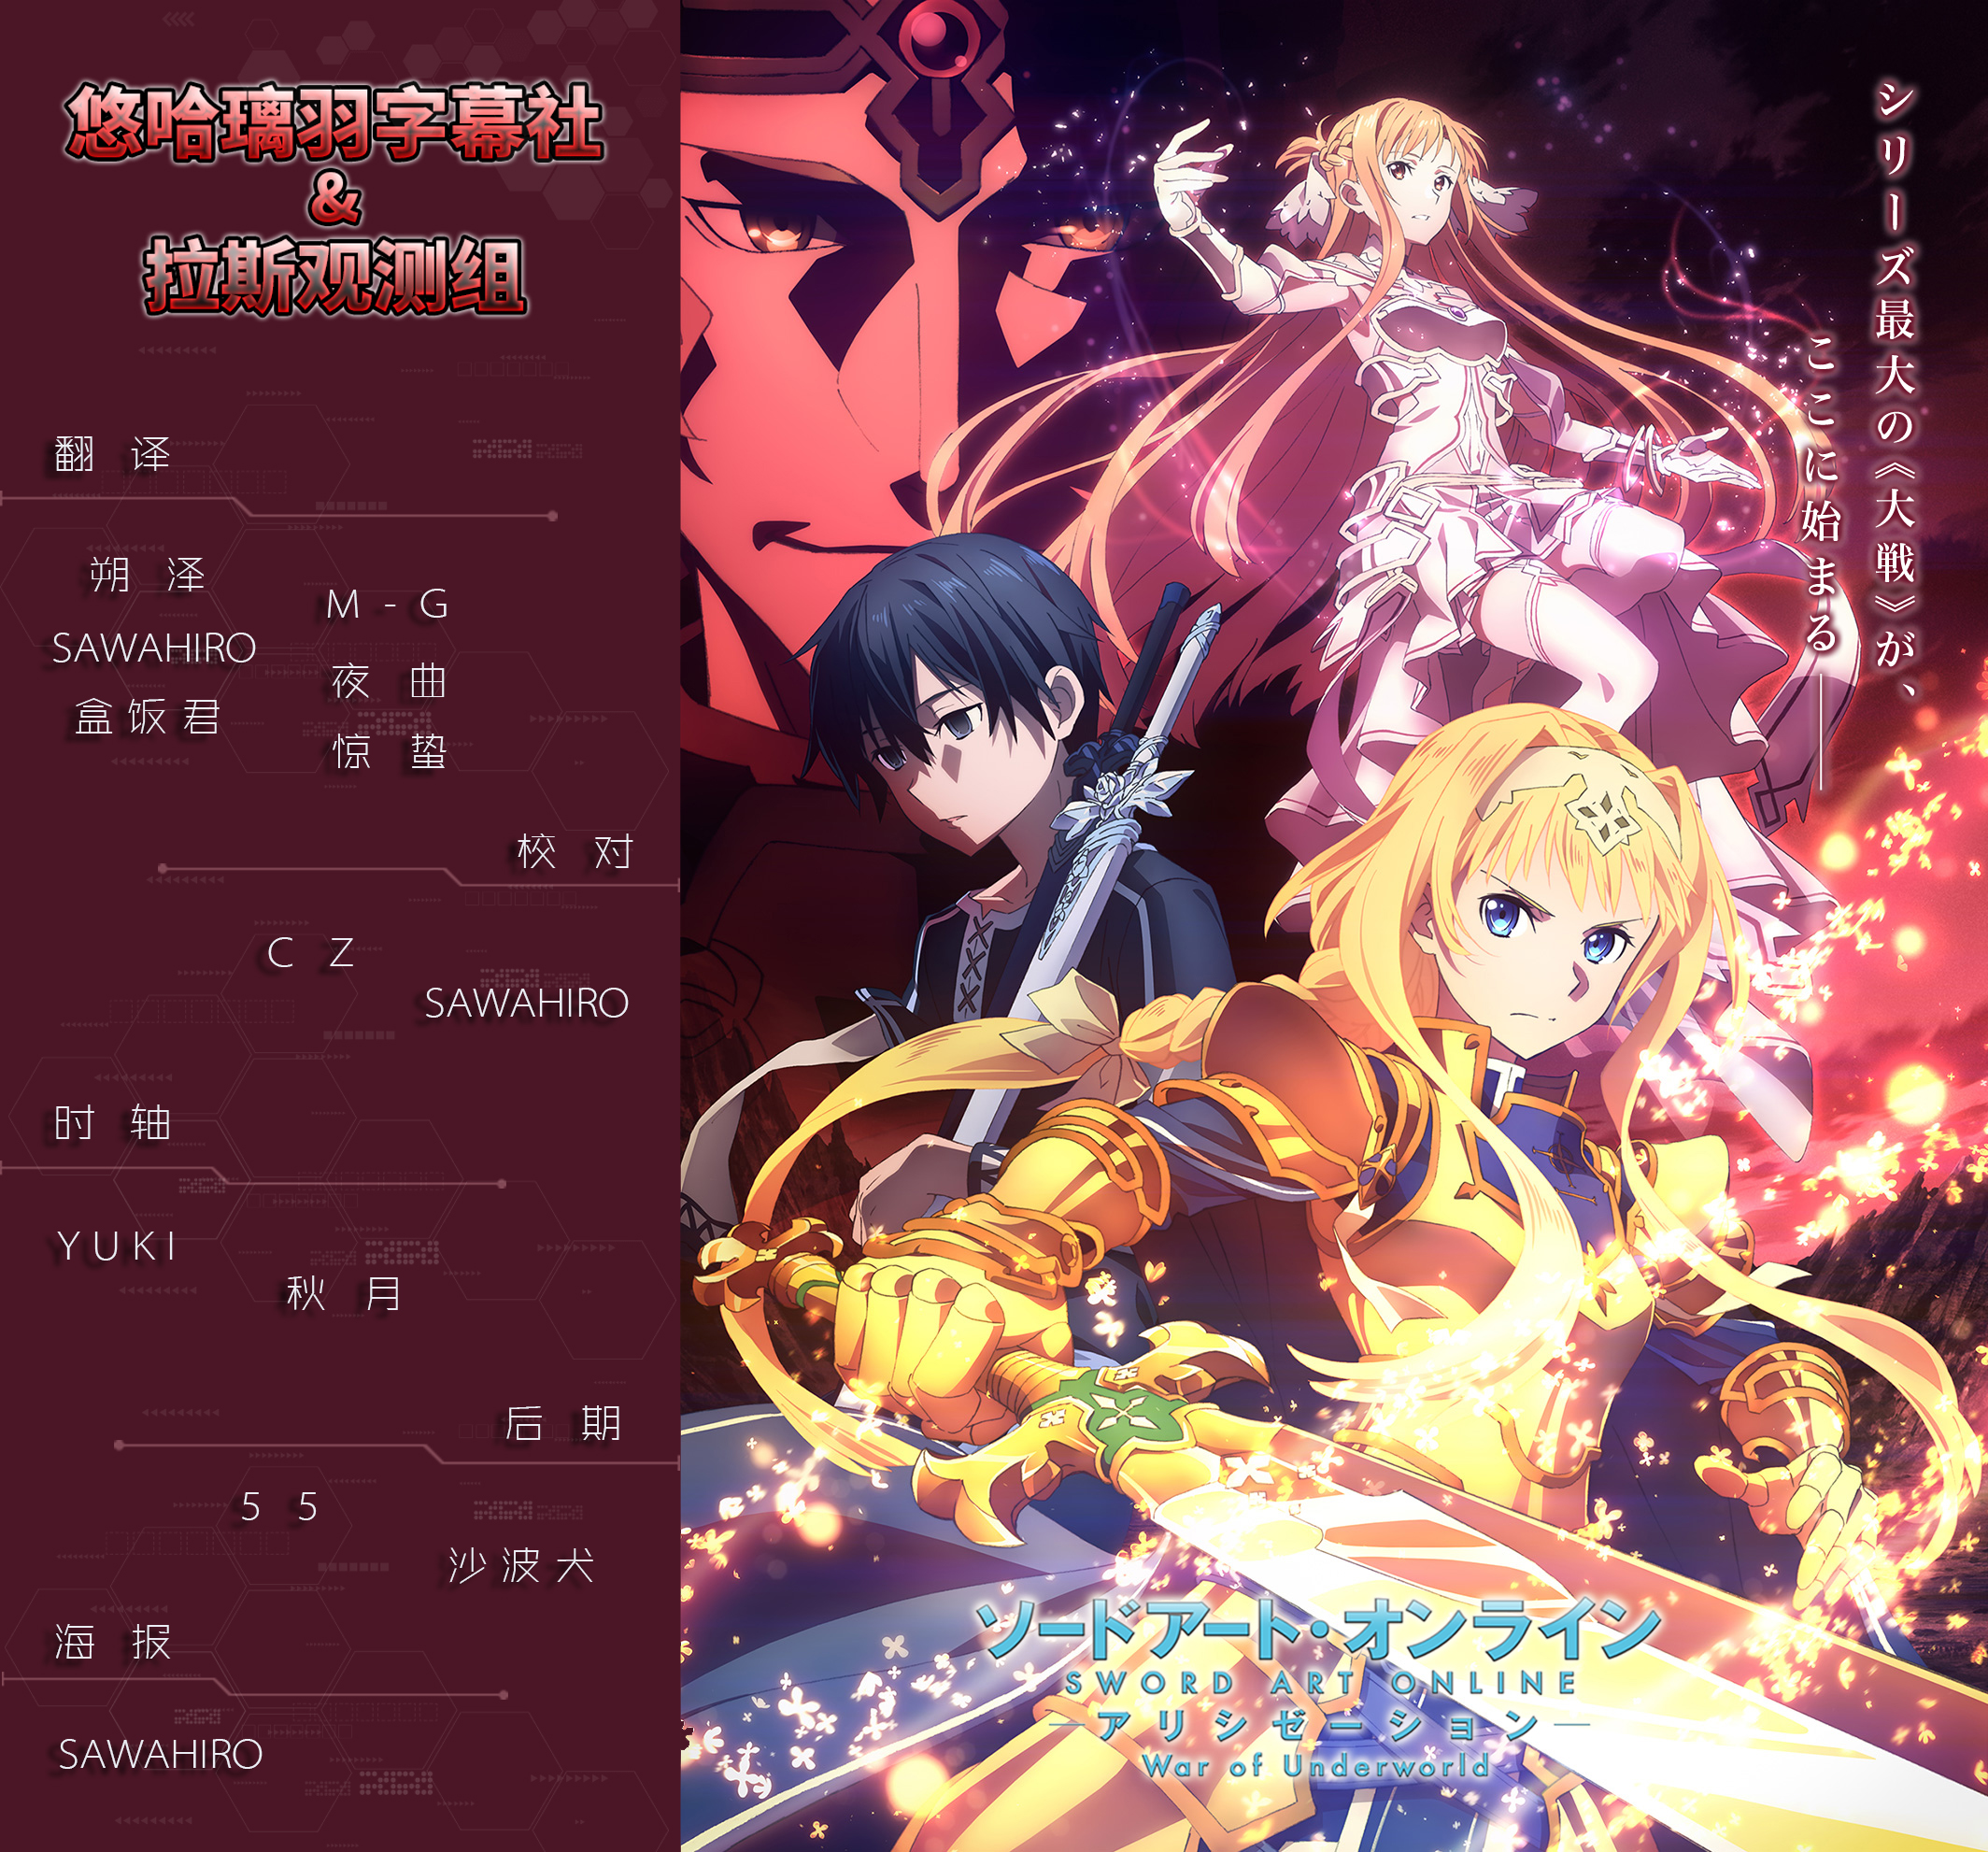 【悠哈璃羽字幕社&拉斯观测组】[刀剑神域 Alicization_Sword Art Online - Alicization  - War of Underworld -][05][x264 1080p][CHT]